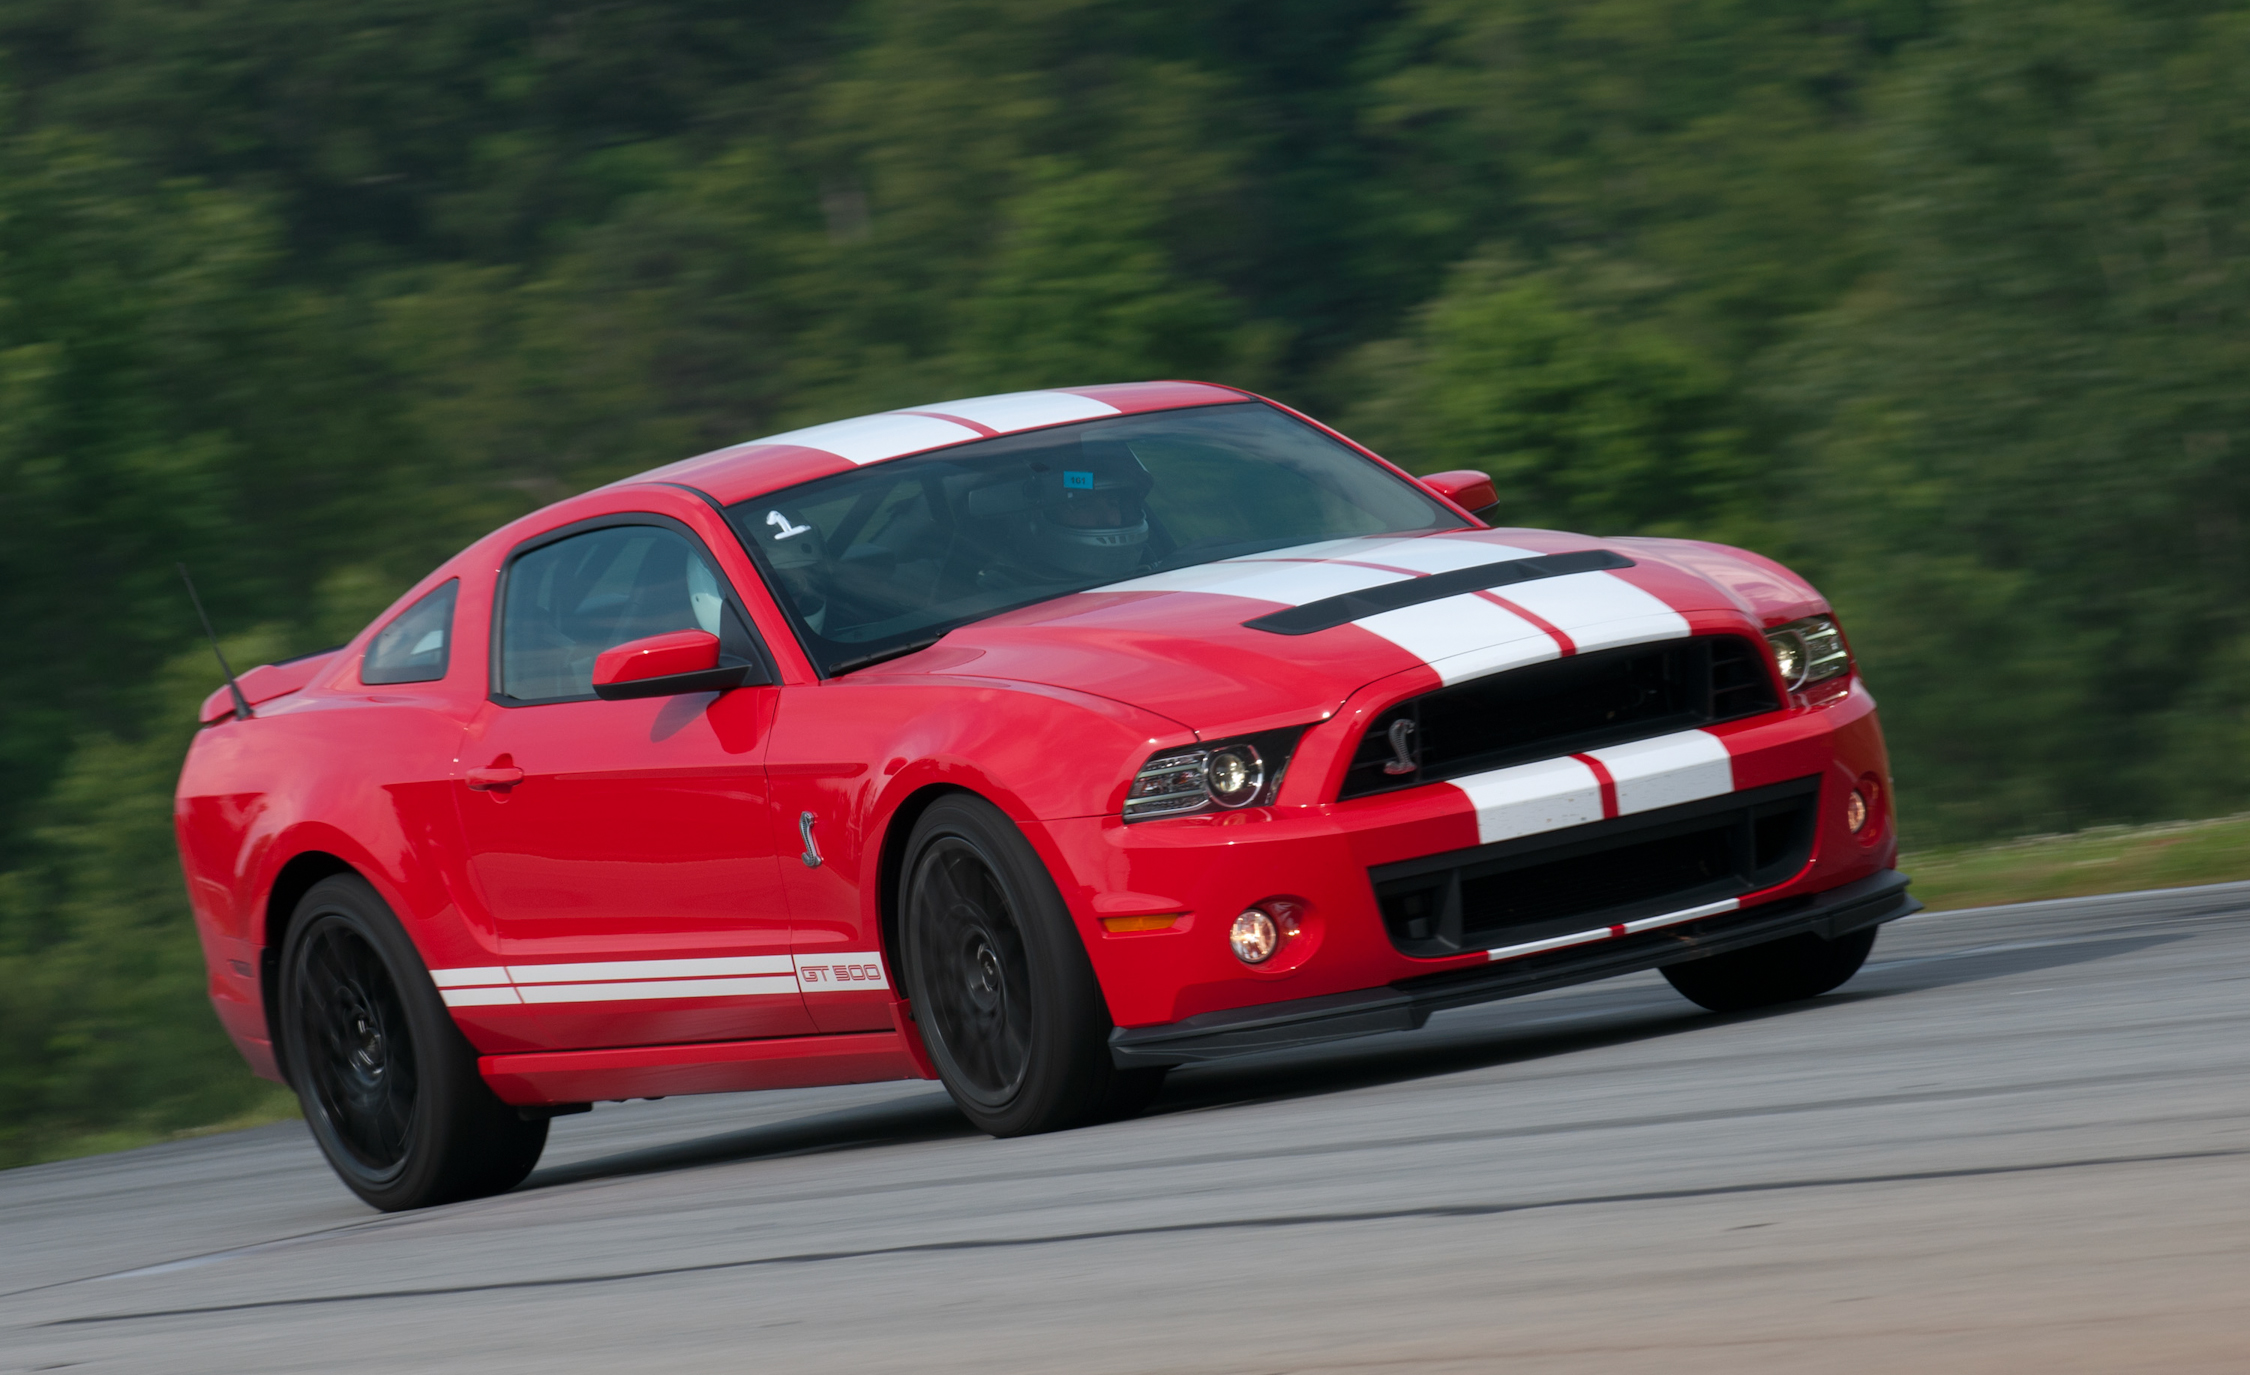 2013 Ford Mustang Shelby GT500 Red (Photo 28 of 47)